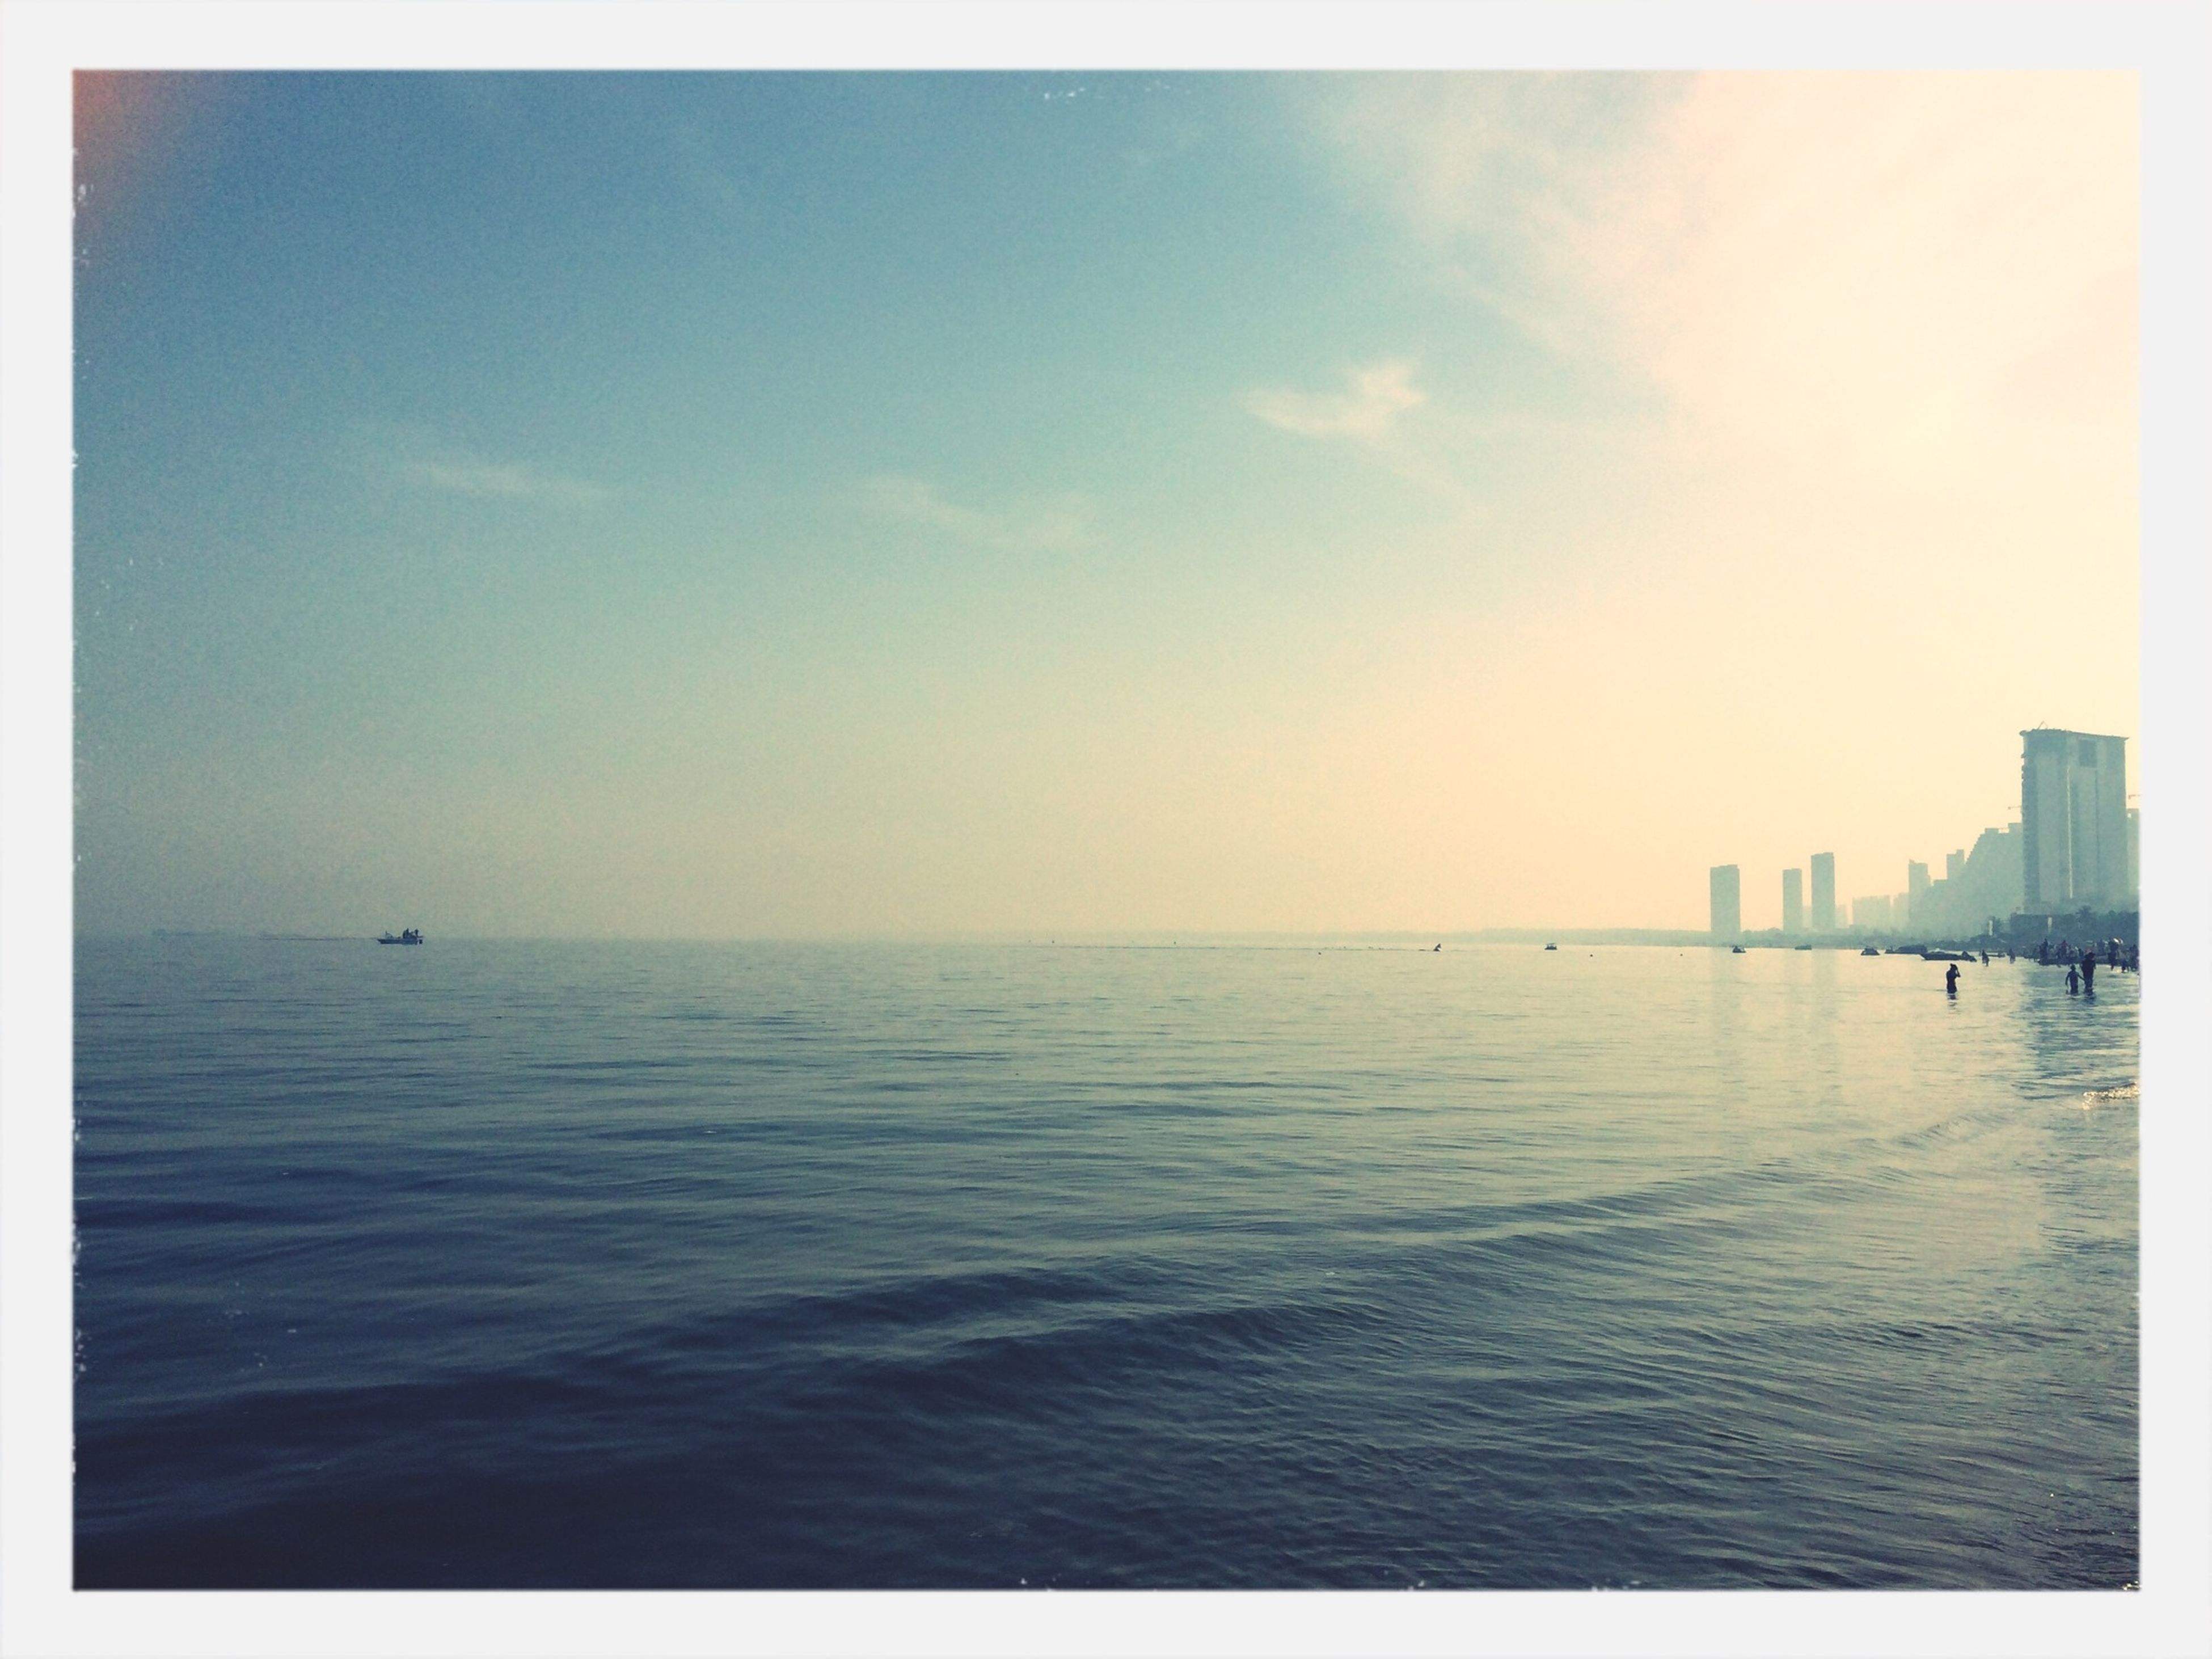 sea, water, horizon over water, scenics, tranquil scene, transfer print, tranquility, waterfront, sky, beauty in nature, auto post production filter, nature, idyllic, sunset, rippled, seascape, outdoors, calm, built structure, ocean